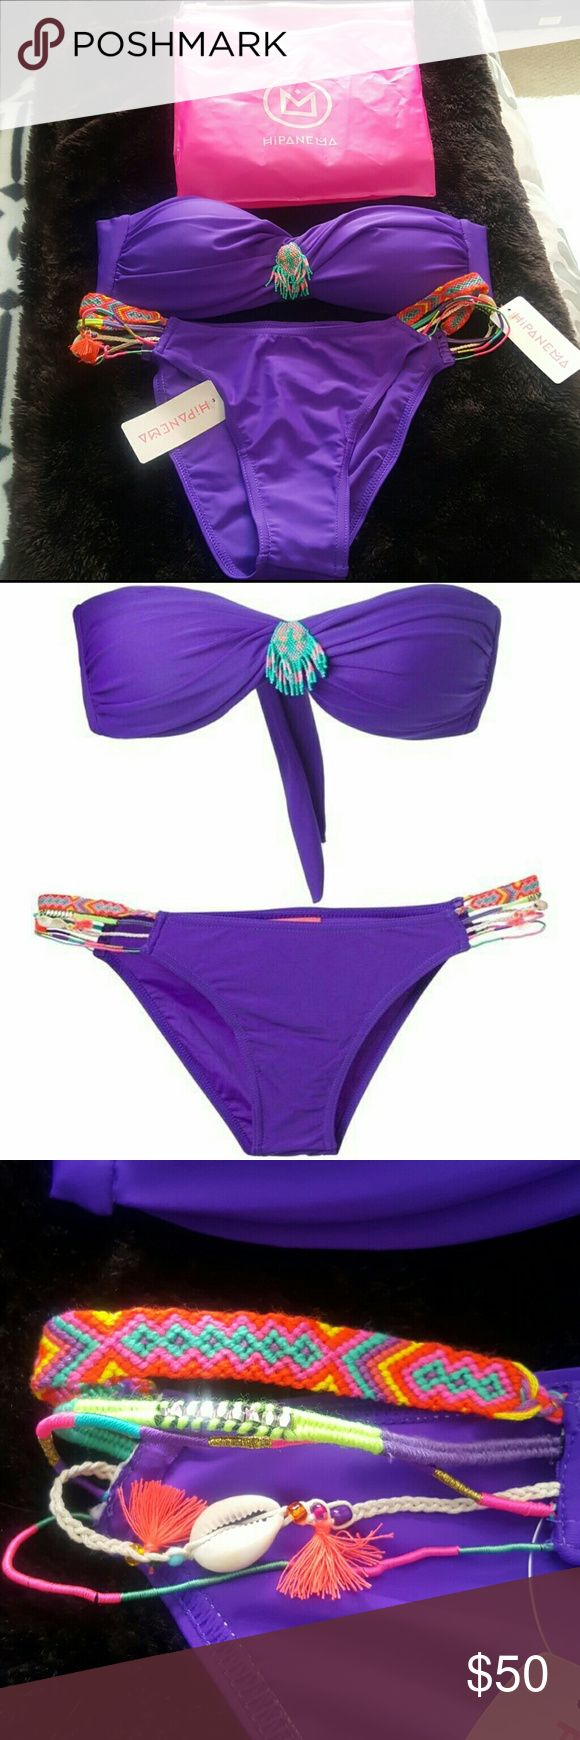 NWT HIPANEMA Bathing Suit NWT HIPANEMA  Purple bikini has bandeau top with beaded accent and multiple braided strands on bottom The SwimPurple bikini is feminine and daring at the same time. The twisted bandeau top ties in the back, is comfortably padded and has a small beaded ornament that highlights the fabric twist. The bottoms show you at your best with a Brazilian cut!  Too small for me, comes with swim bag too! HIPANEMA  Swim Bikinis